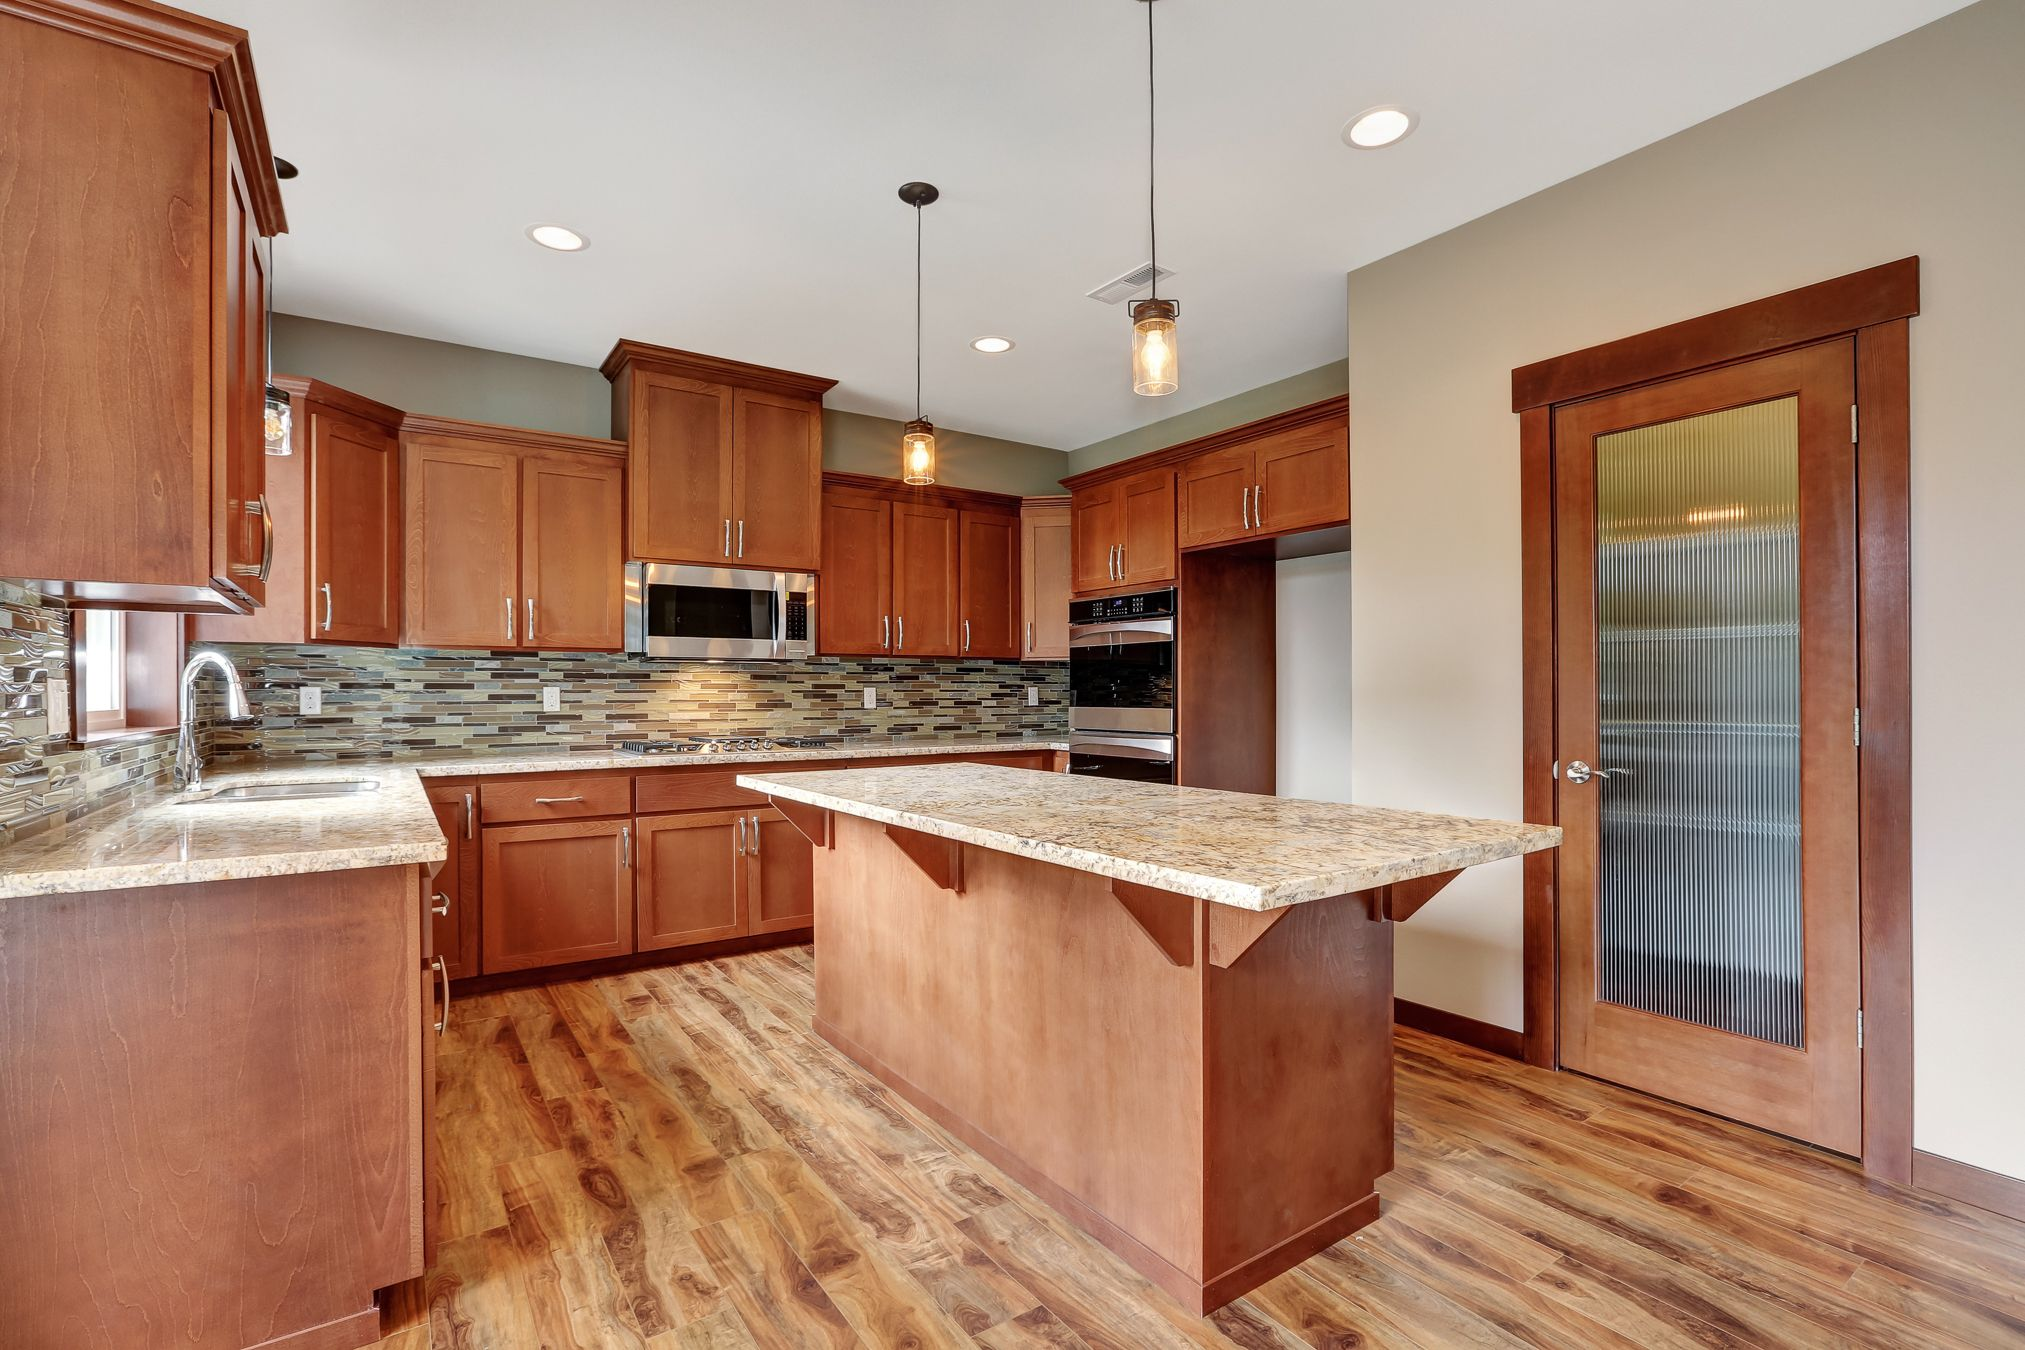 Beautiful Craftsman Kitchen With A 3x6 Island And Large Walk In Pantry Pendant Lighting On Island And Over T Kitchen Layout Craftsman Kitchen Kitchen Remodel 3 x 6 kitchen island